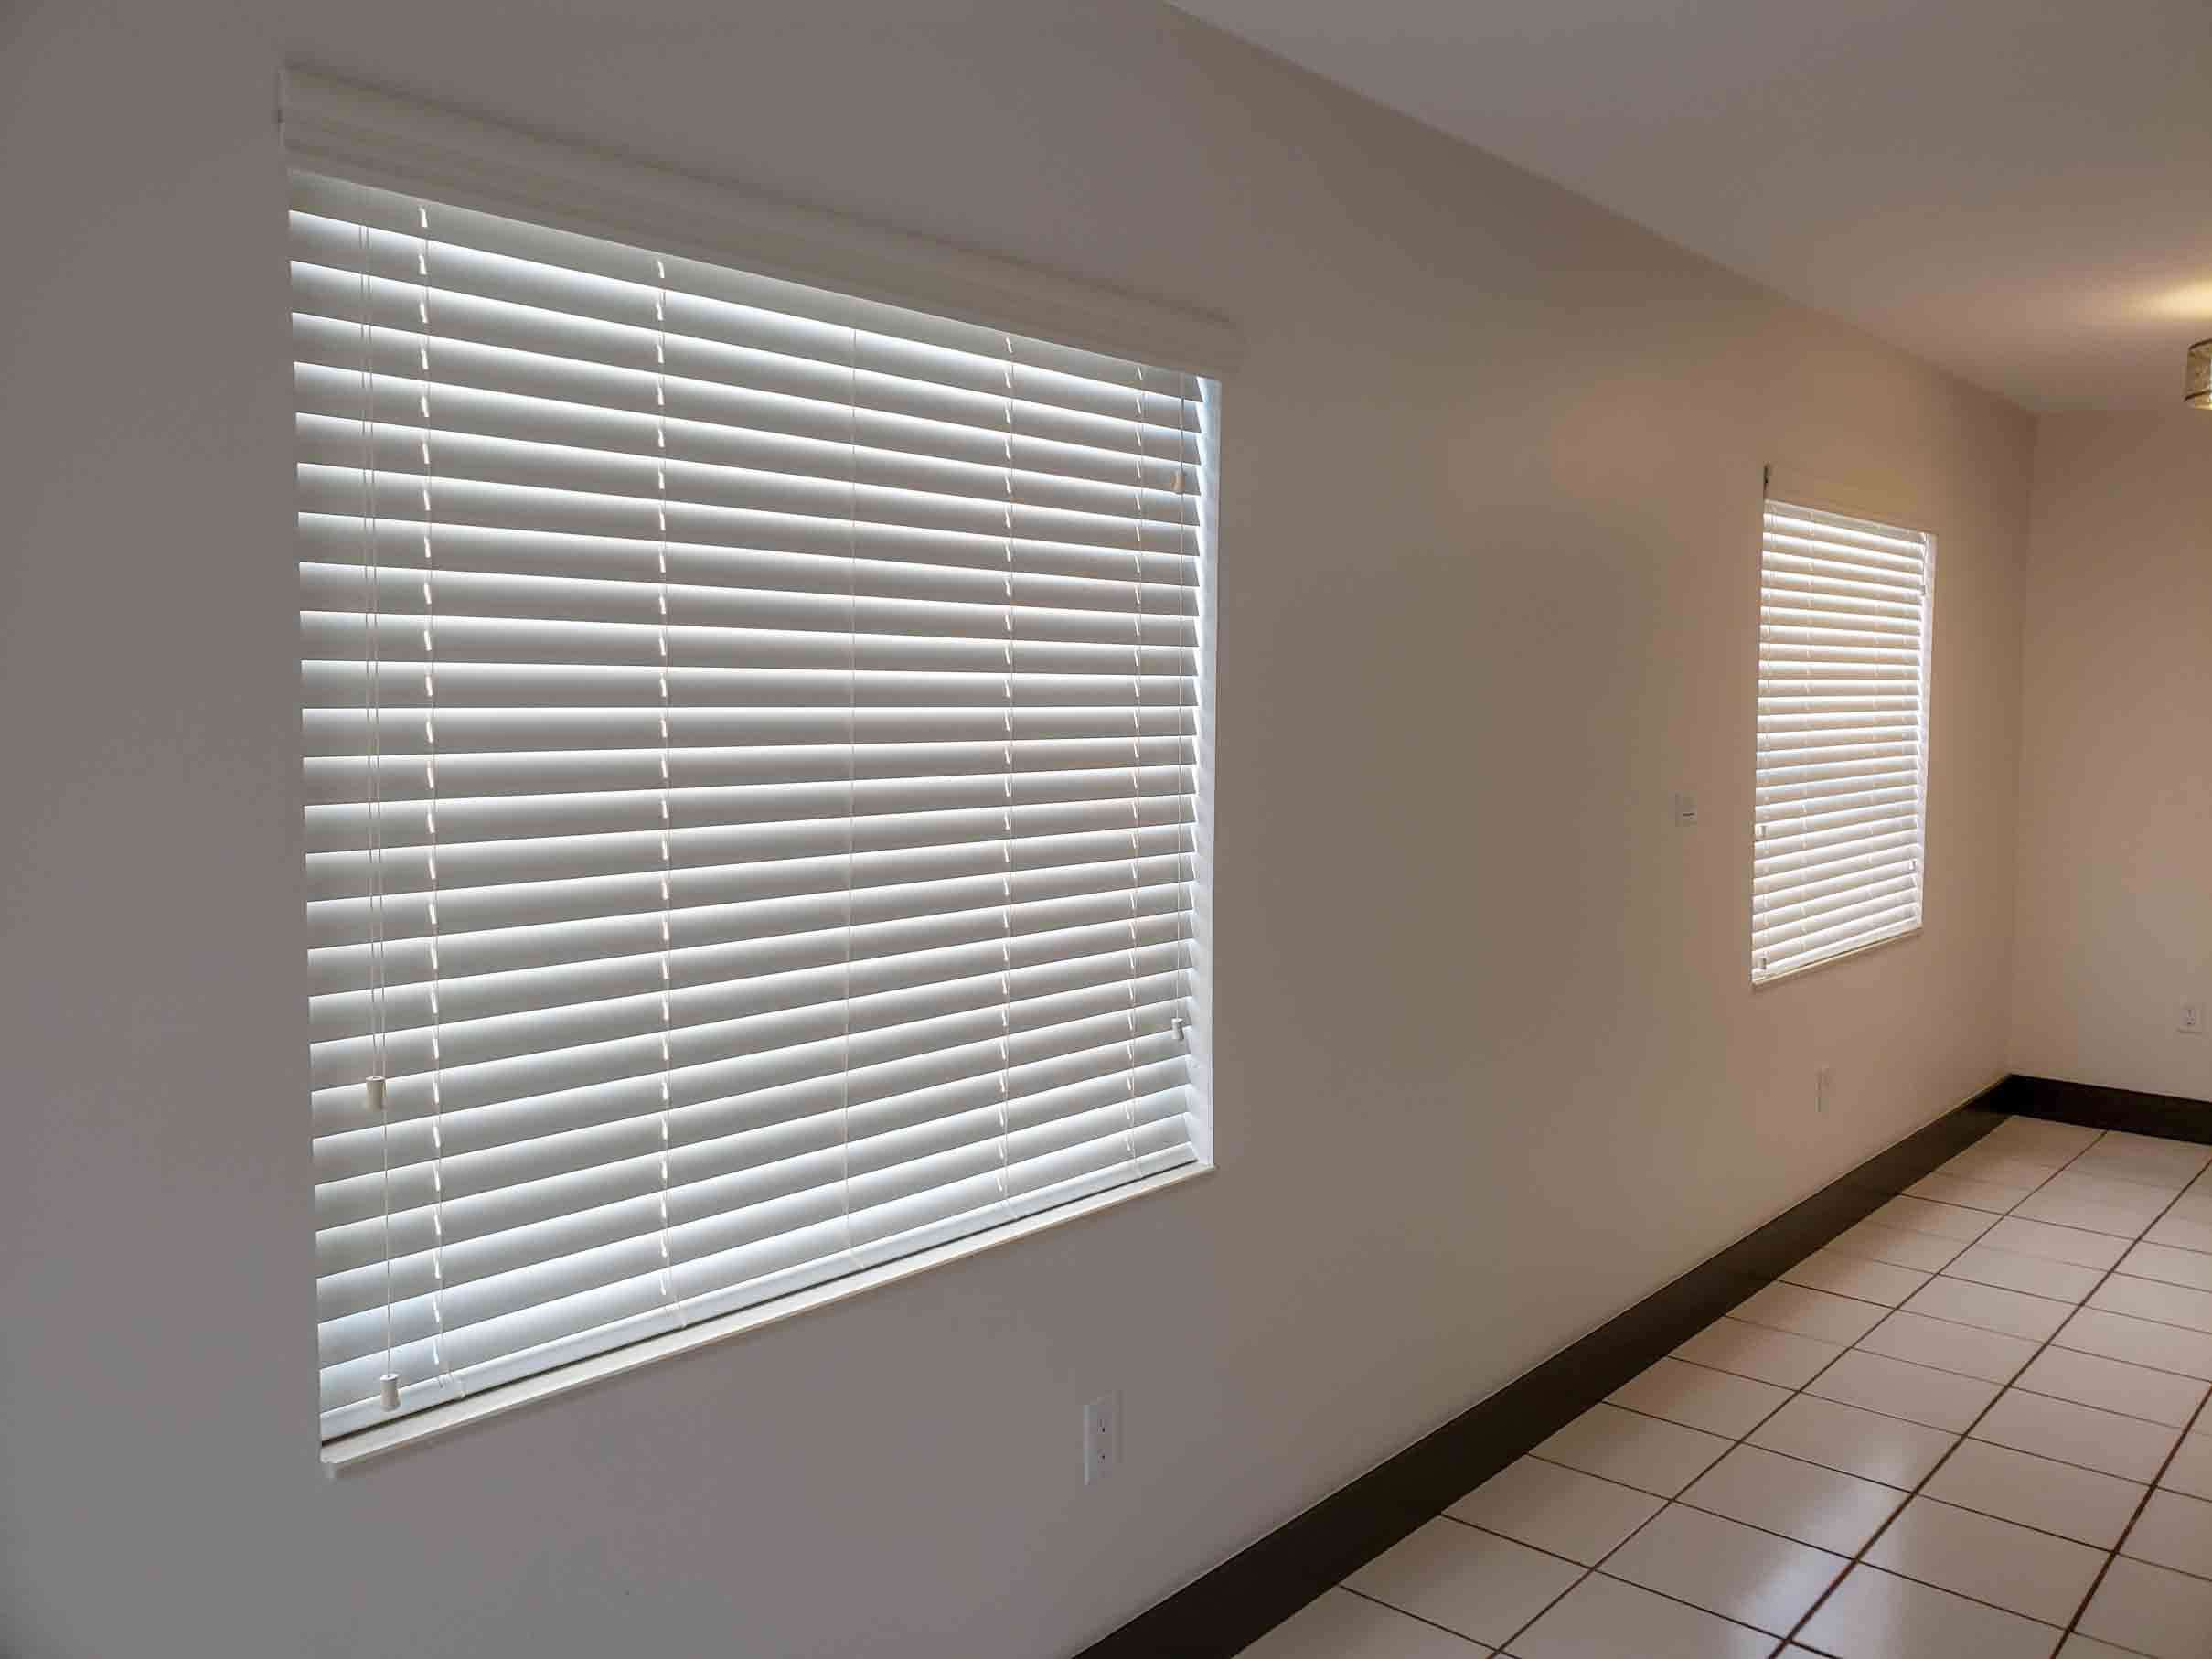 wood blinds gallery WOOD BLINDS GALLERY 20180425 154407